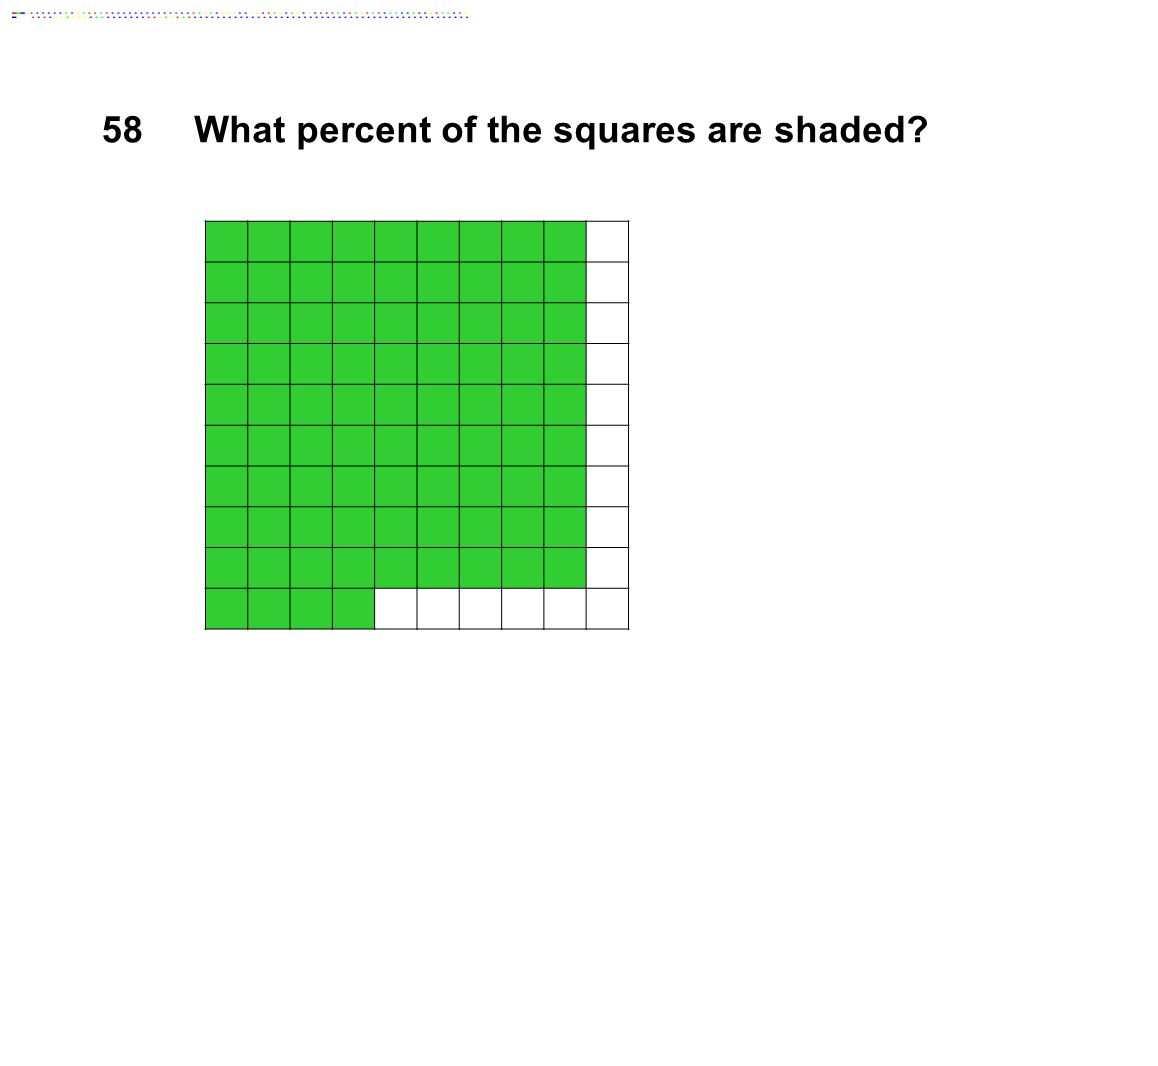 58What percent of the squares are shaded?